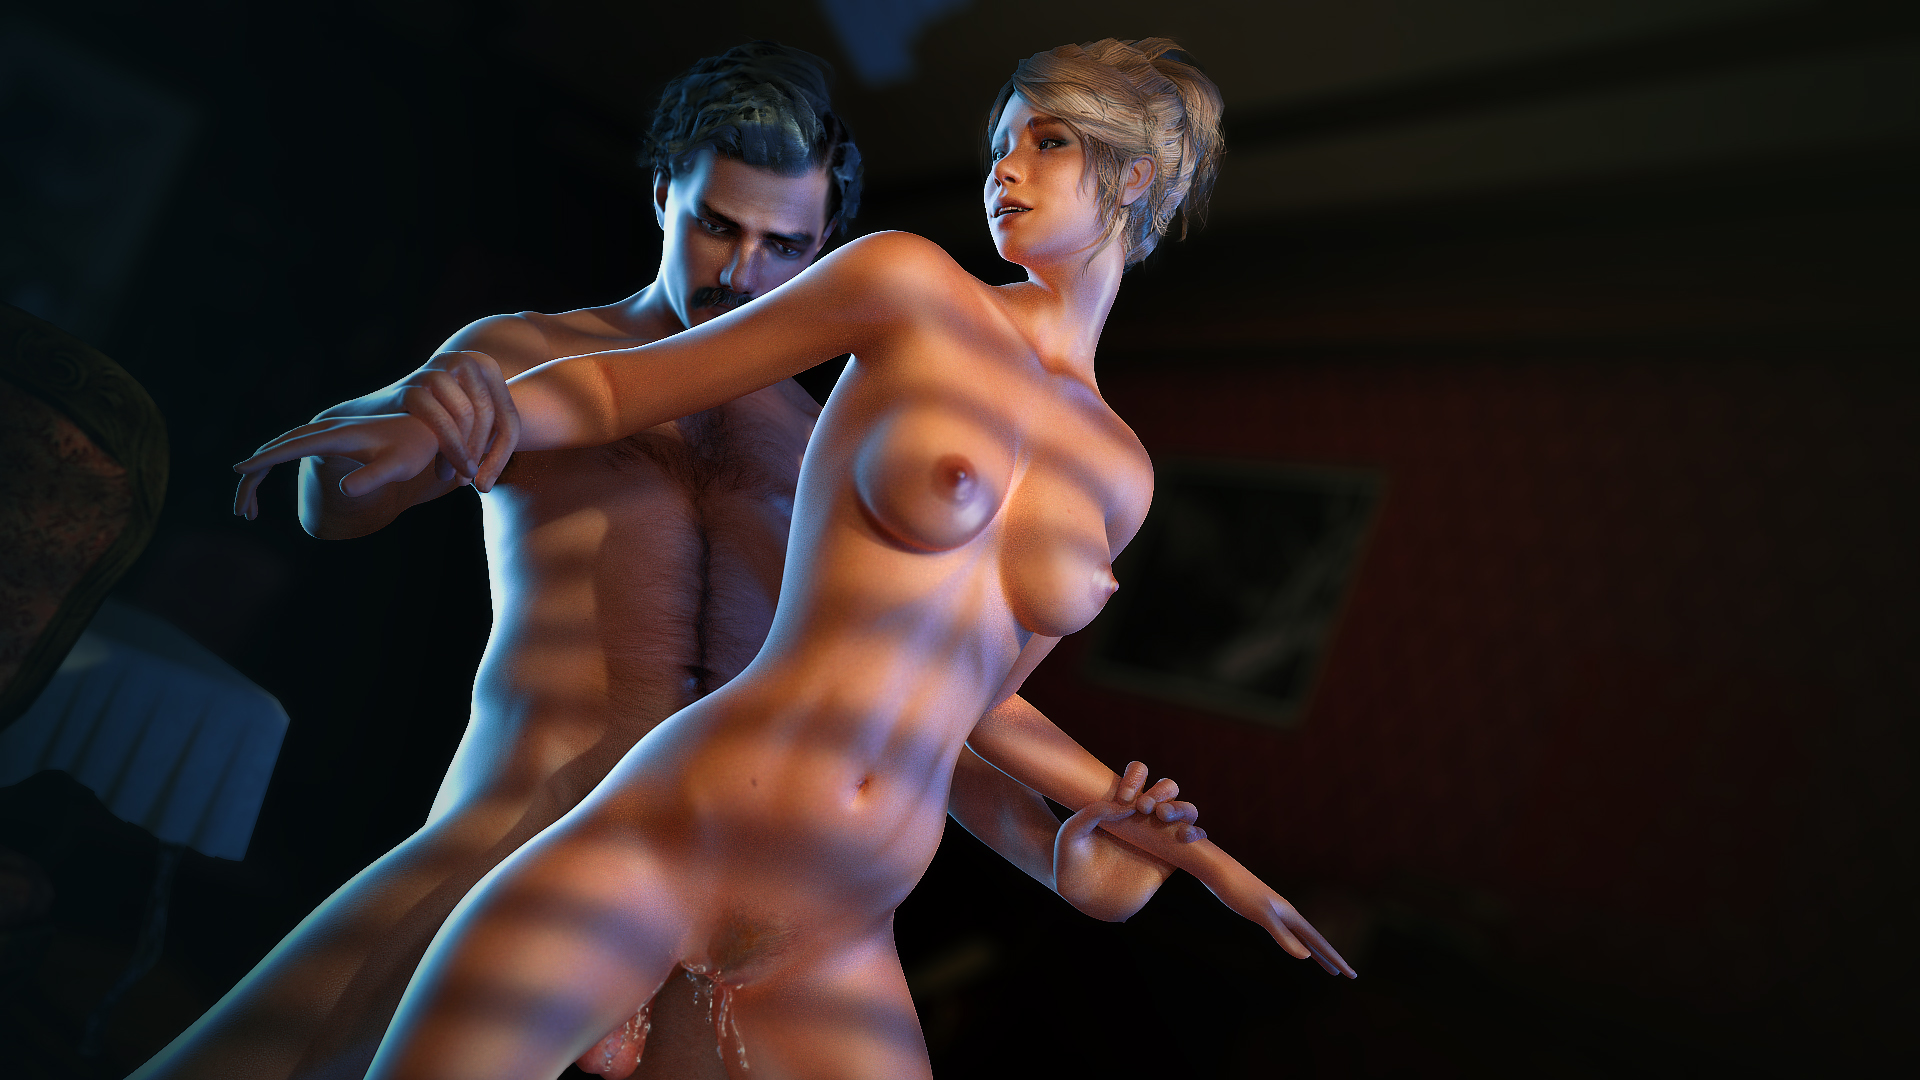 3d narcos xxx game scenes compilation play online 5